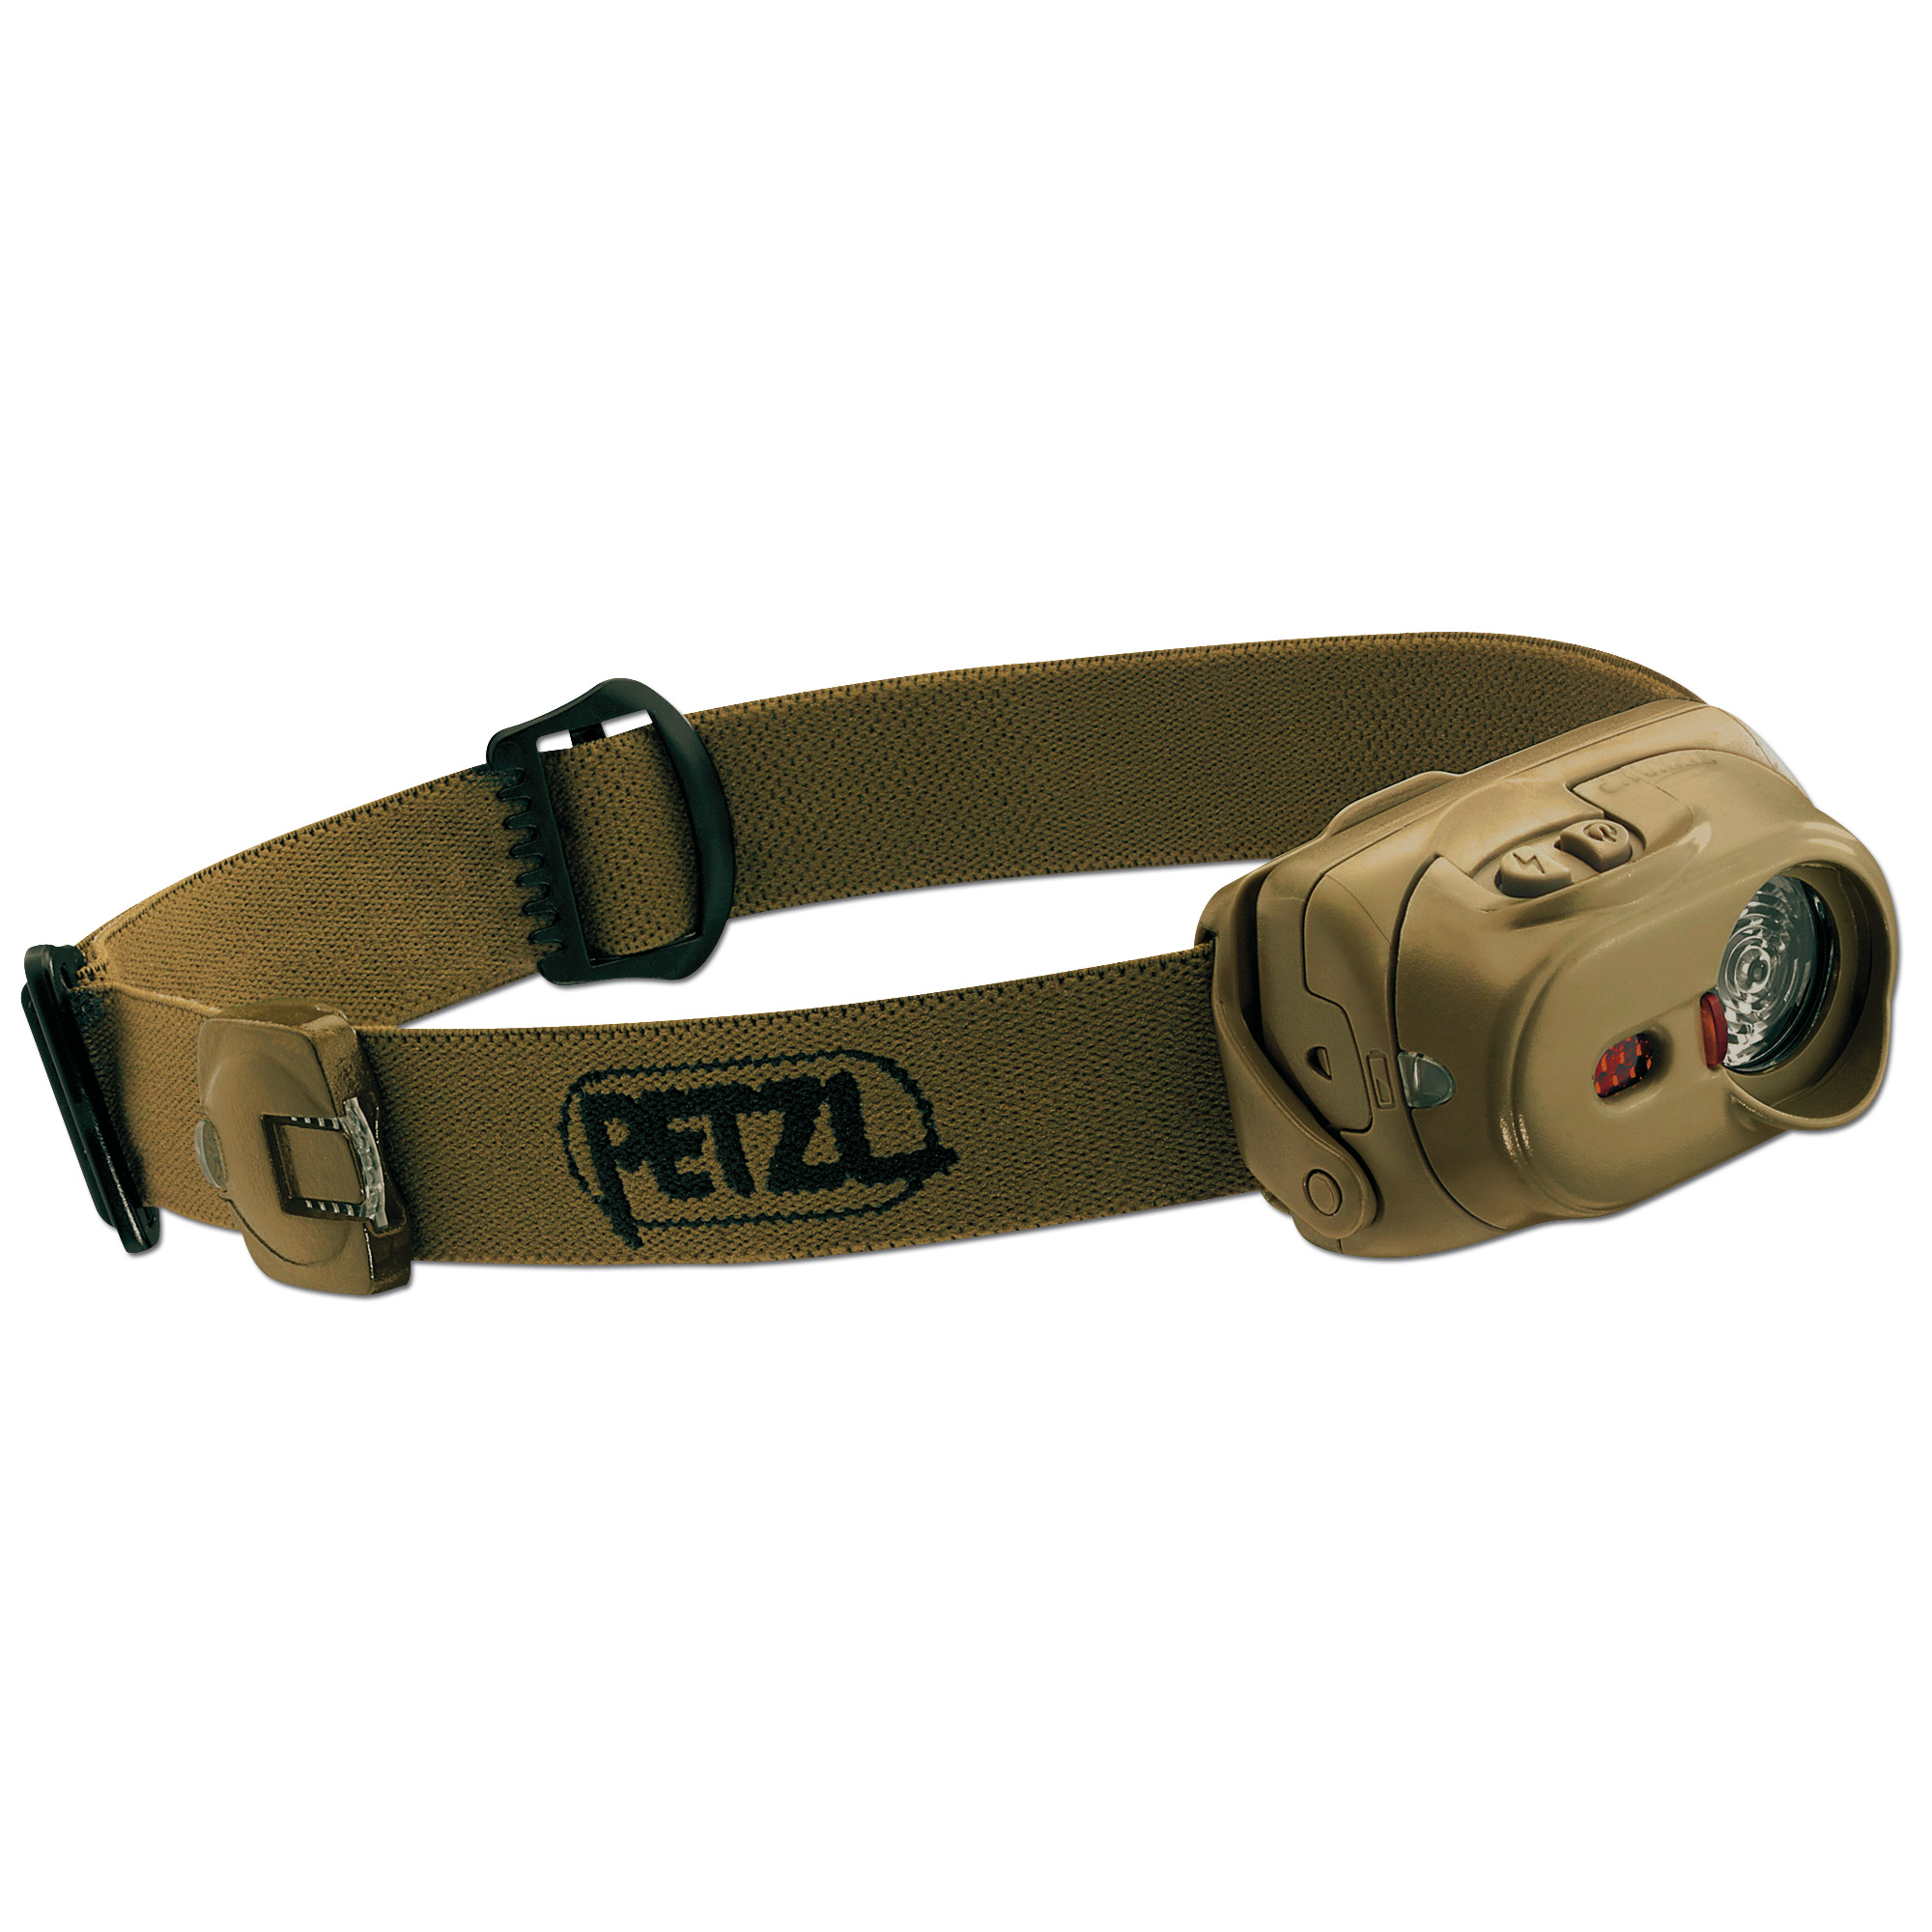 Head Lamp Petzl Tactikka XP desert